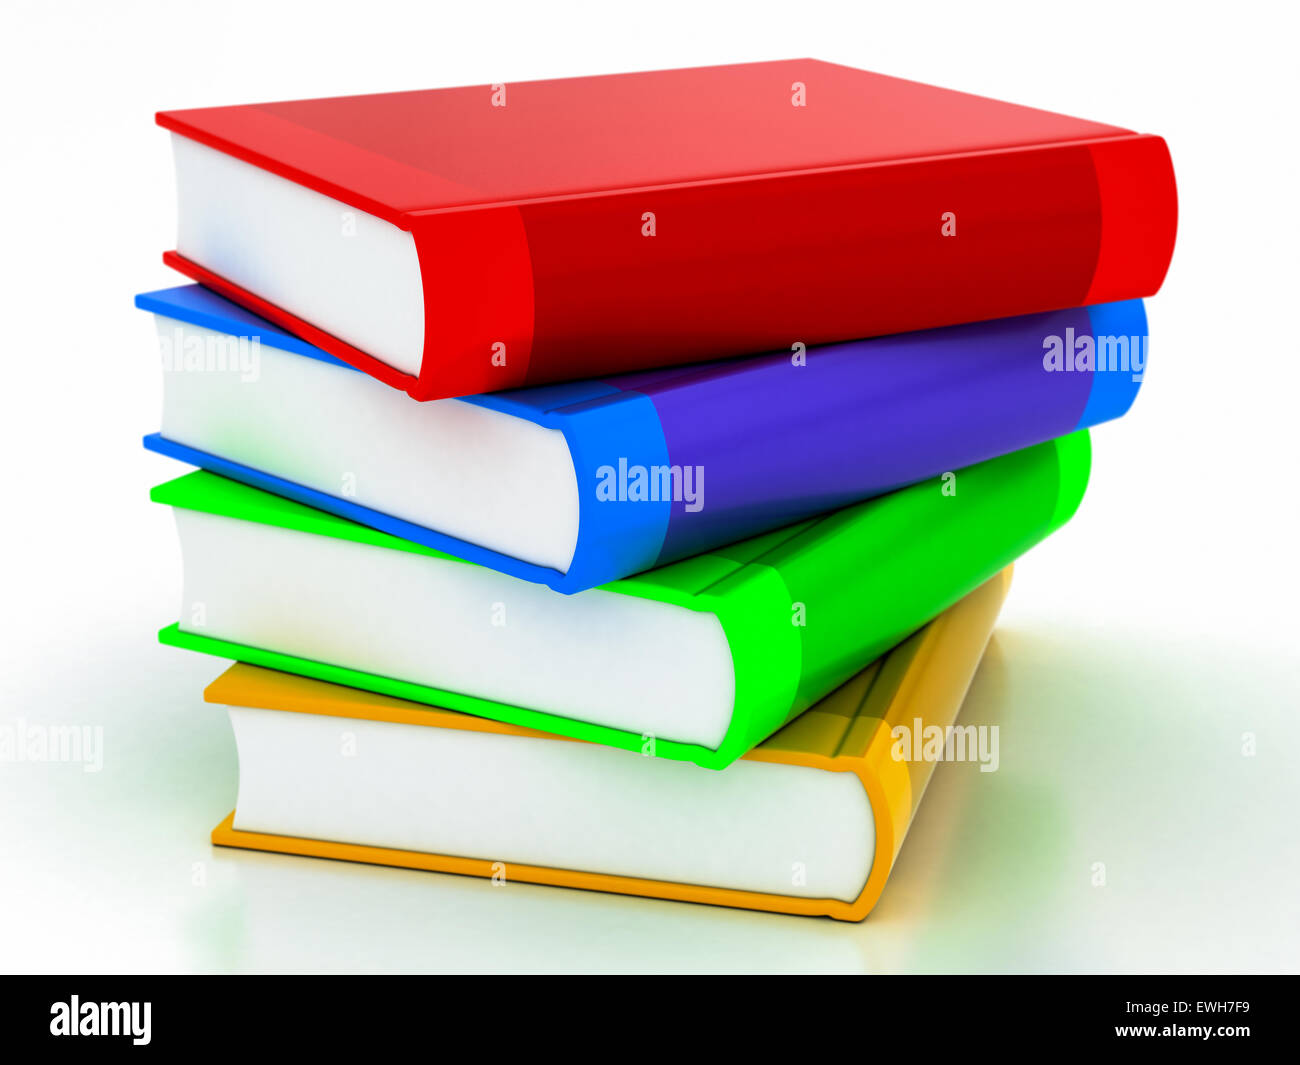 Colored Books Stack Stock Photos & Colored Books Stack Stock Images ...